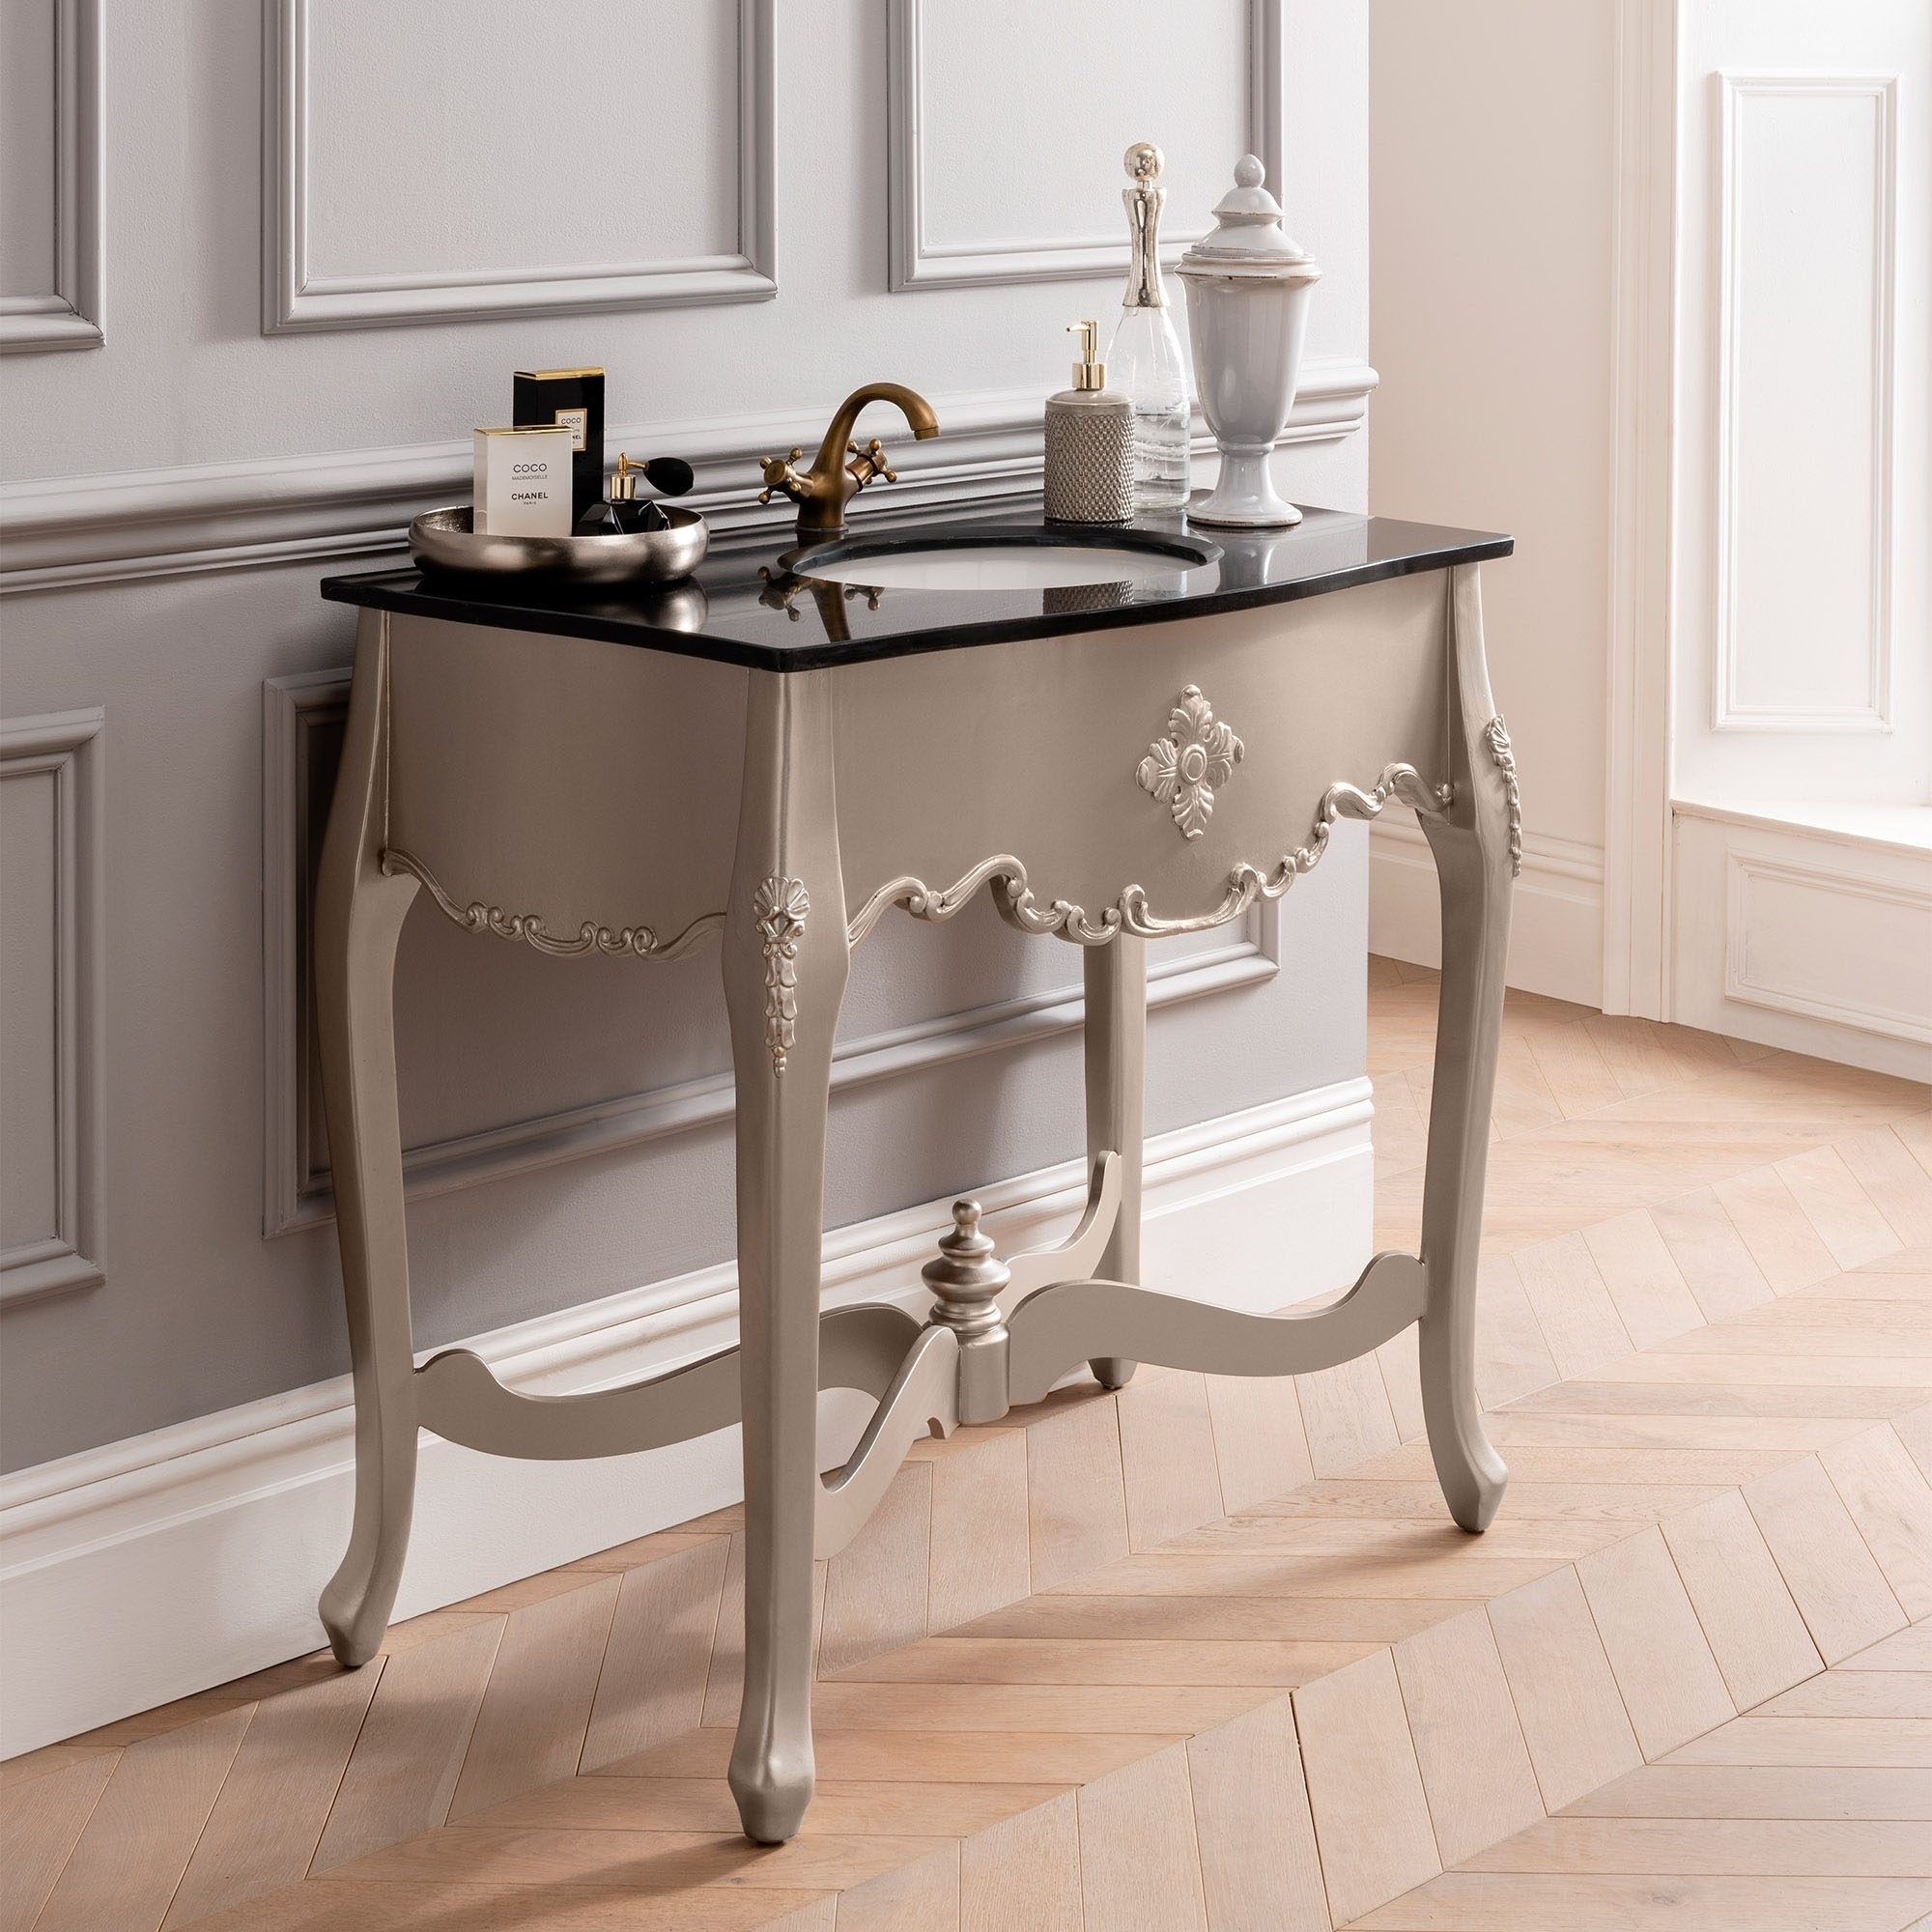 Silver Antique French Style Vanity Unit Bathroom Furniture